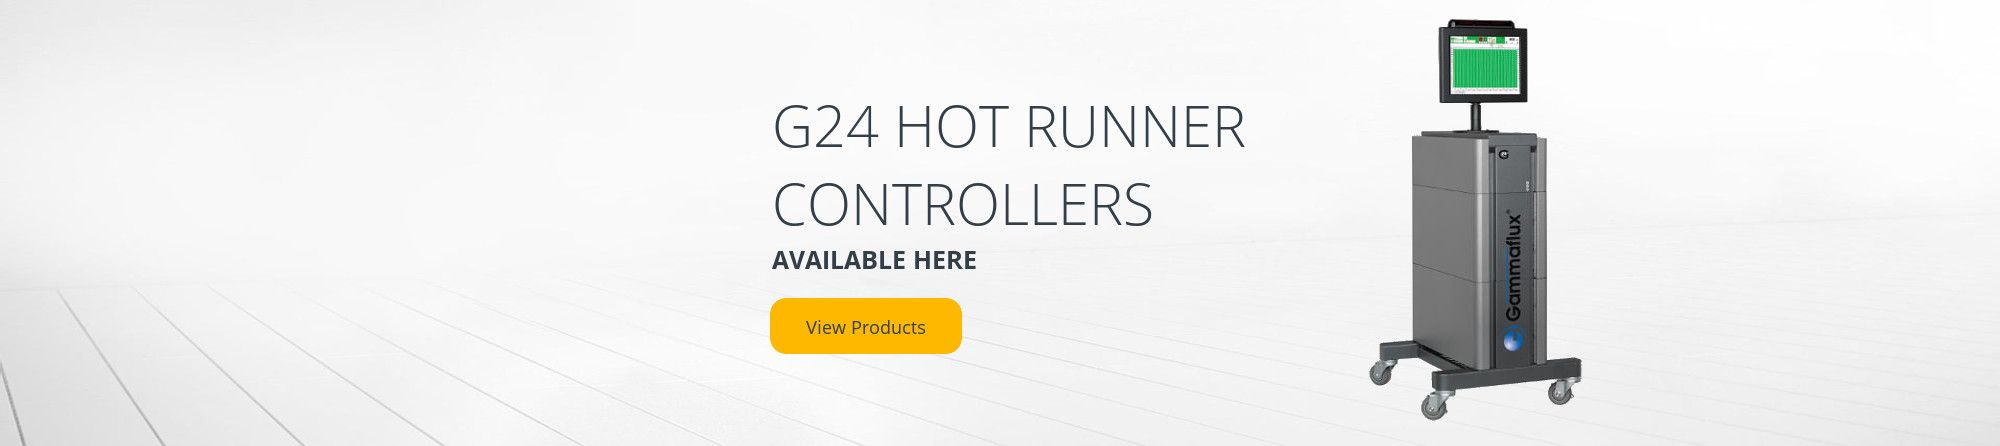 G24 Hot Runner Controller Slider PTA